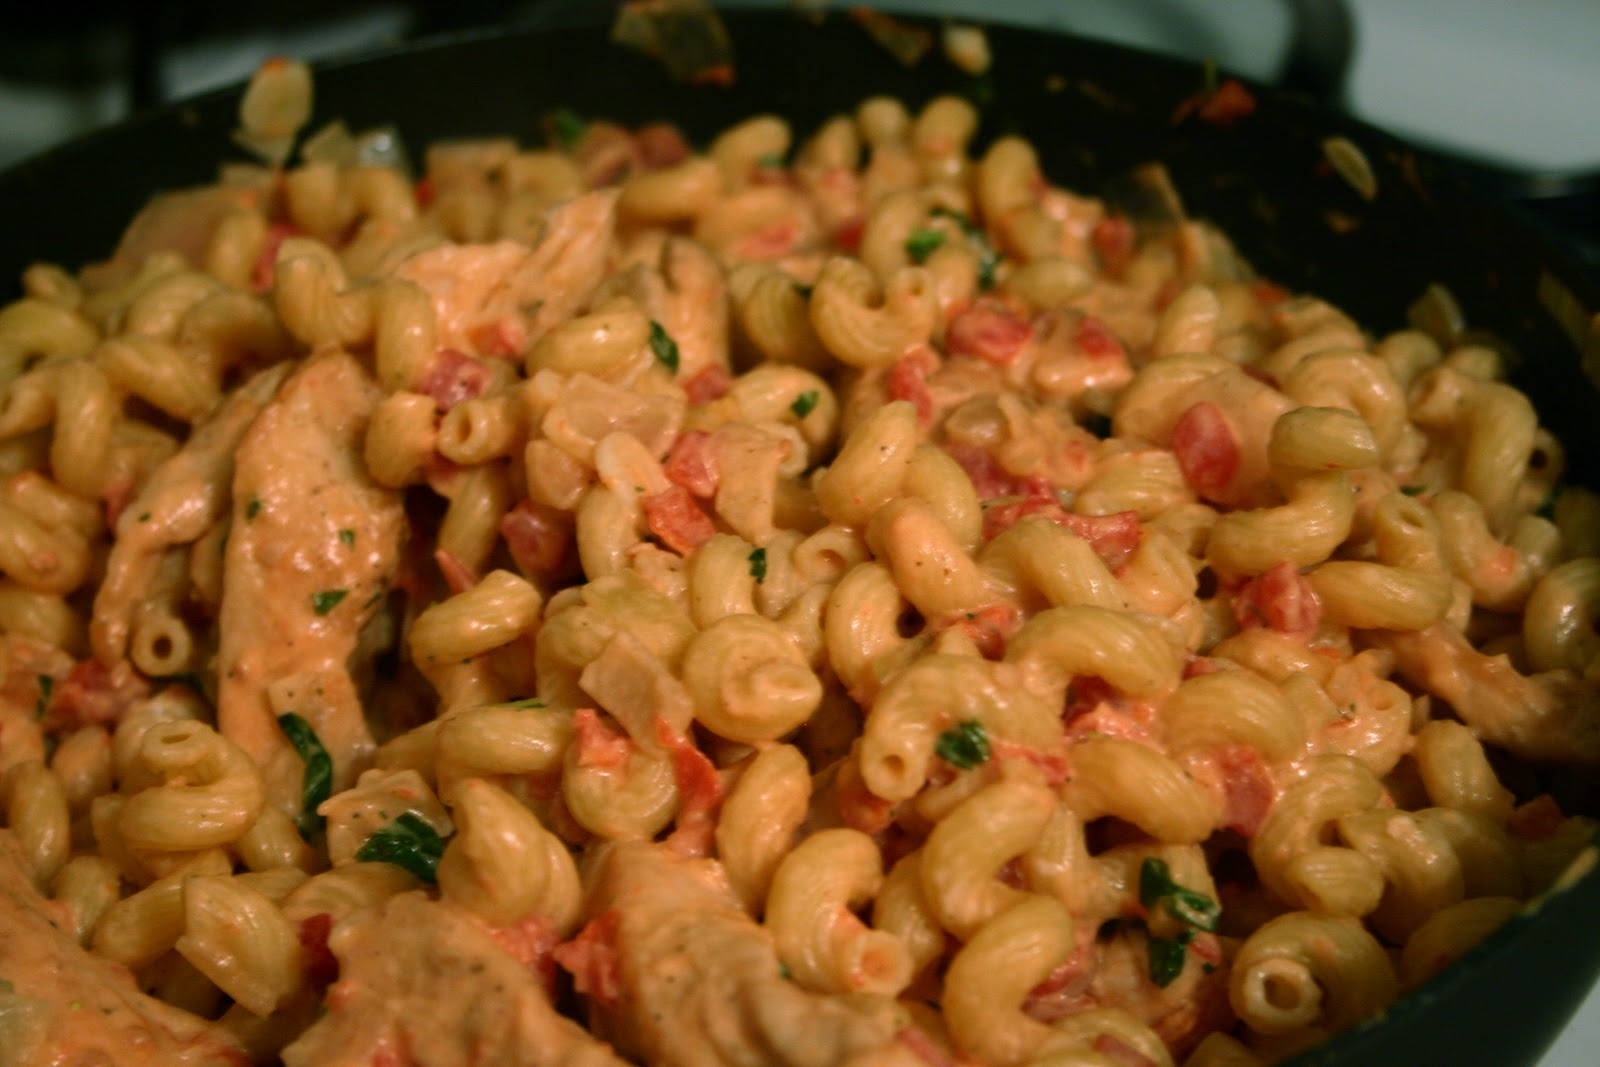 cassia kathleen: Chicken Cavatappi with Lemon and Goat Cheese